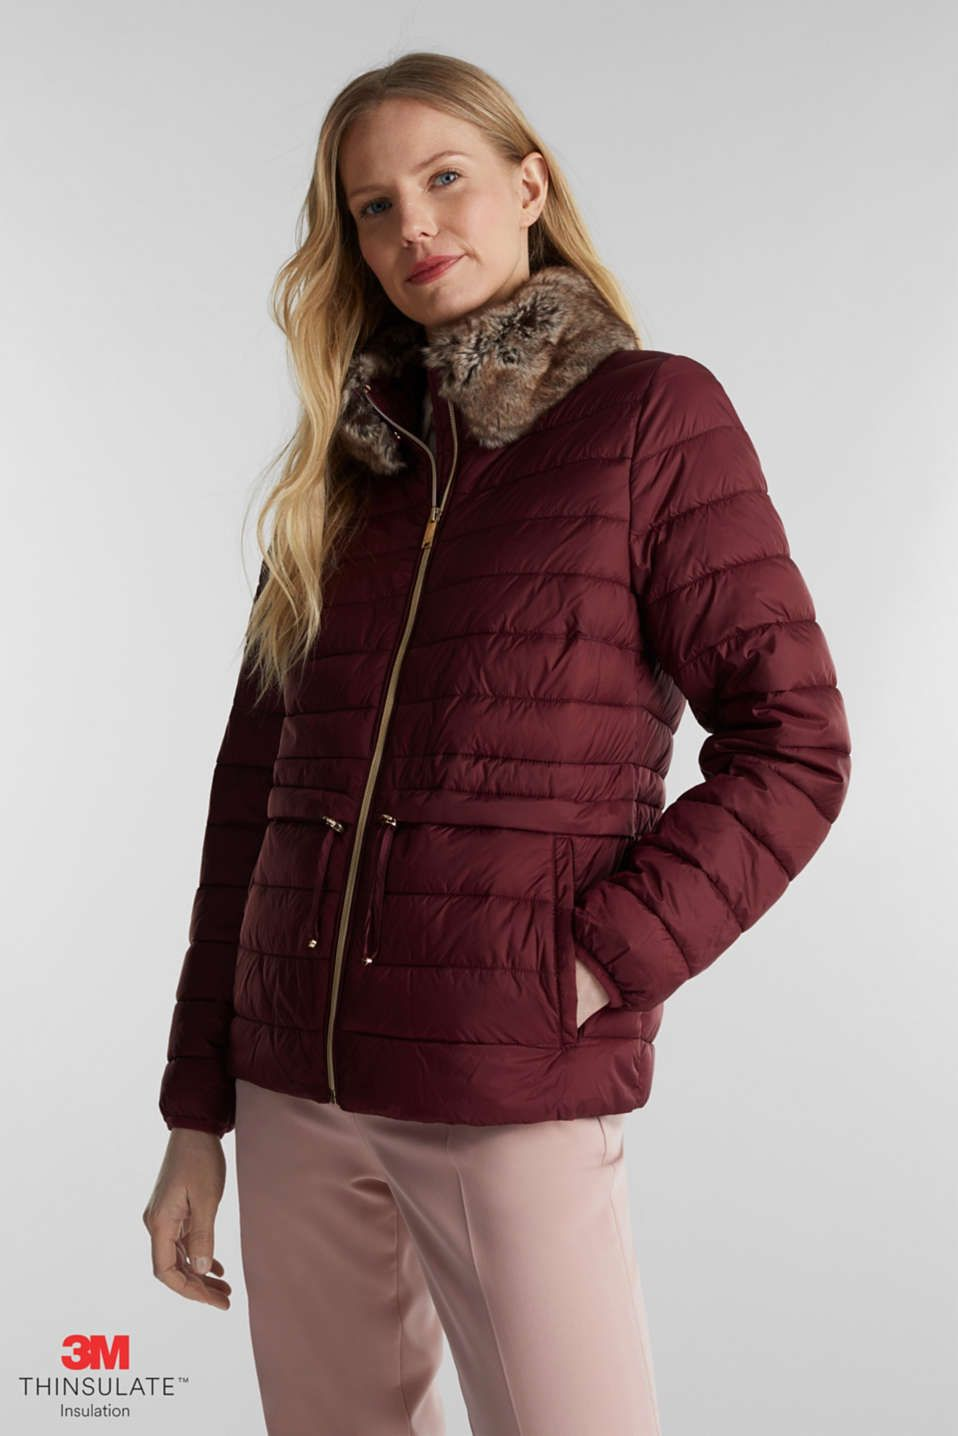 Esprit Recycled 3m Thinsulate Jacket At Our Online Shop In 2021 Jackets Warm Winter Jackets Shopping Outfit [ 1436 x 958 Pixel ]